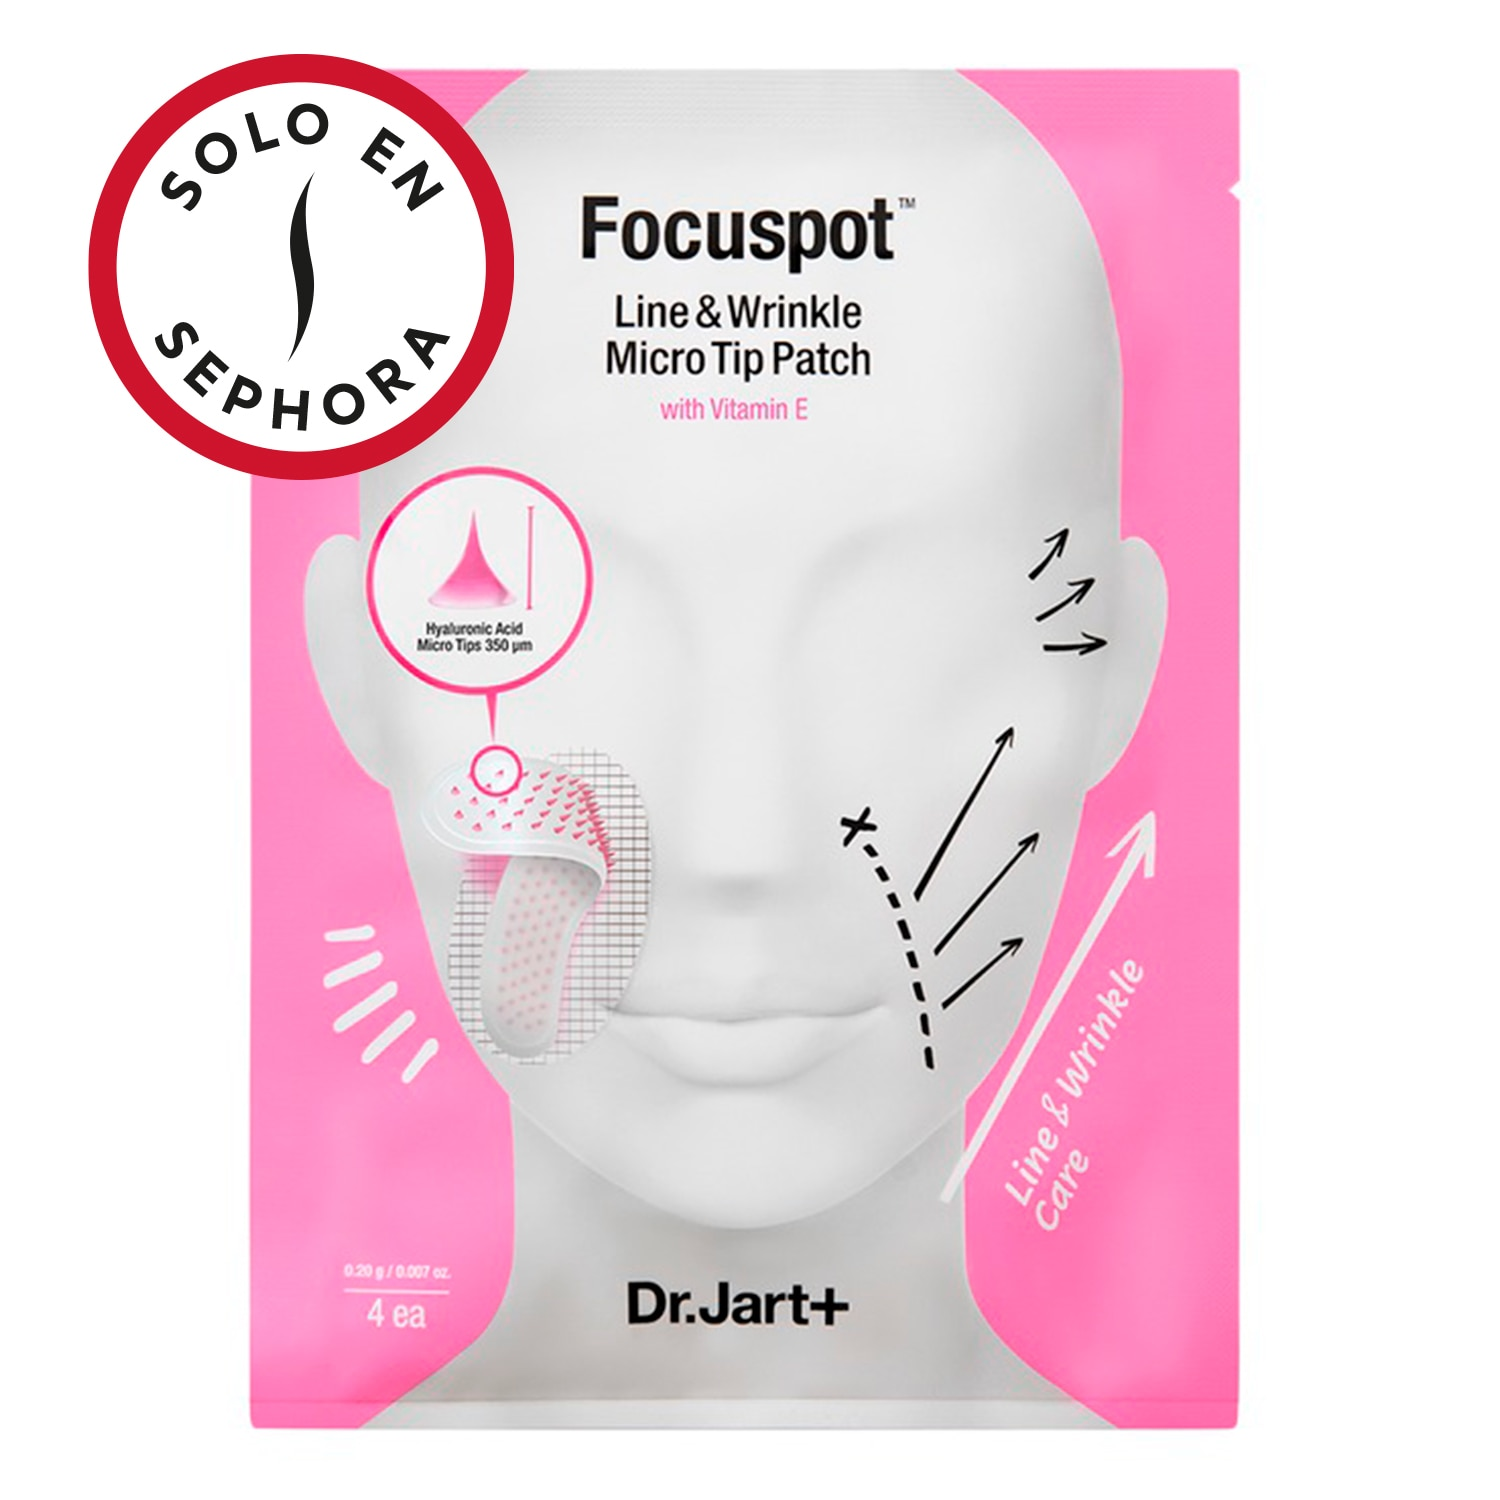 FOCUSPOT™ LINE AND WRINKLE MICRO TIP PATCH CON VITAMIN E